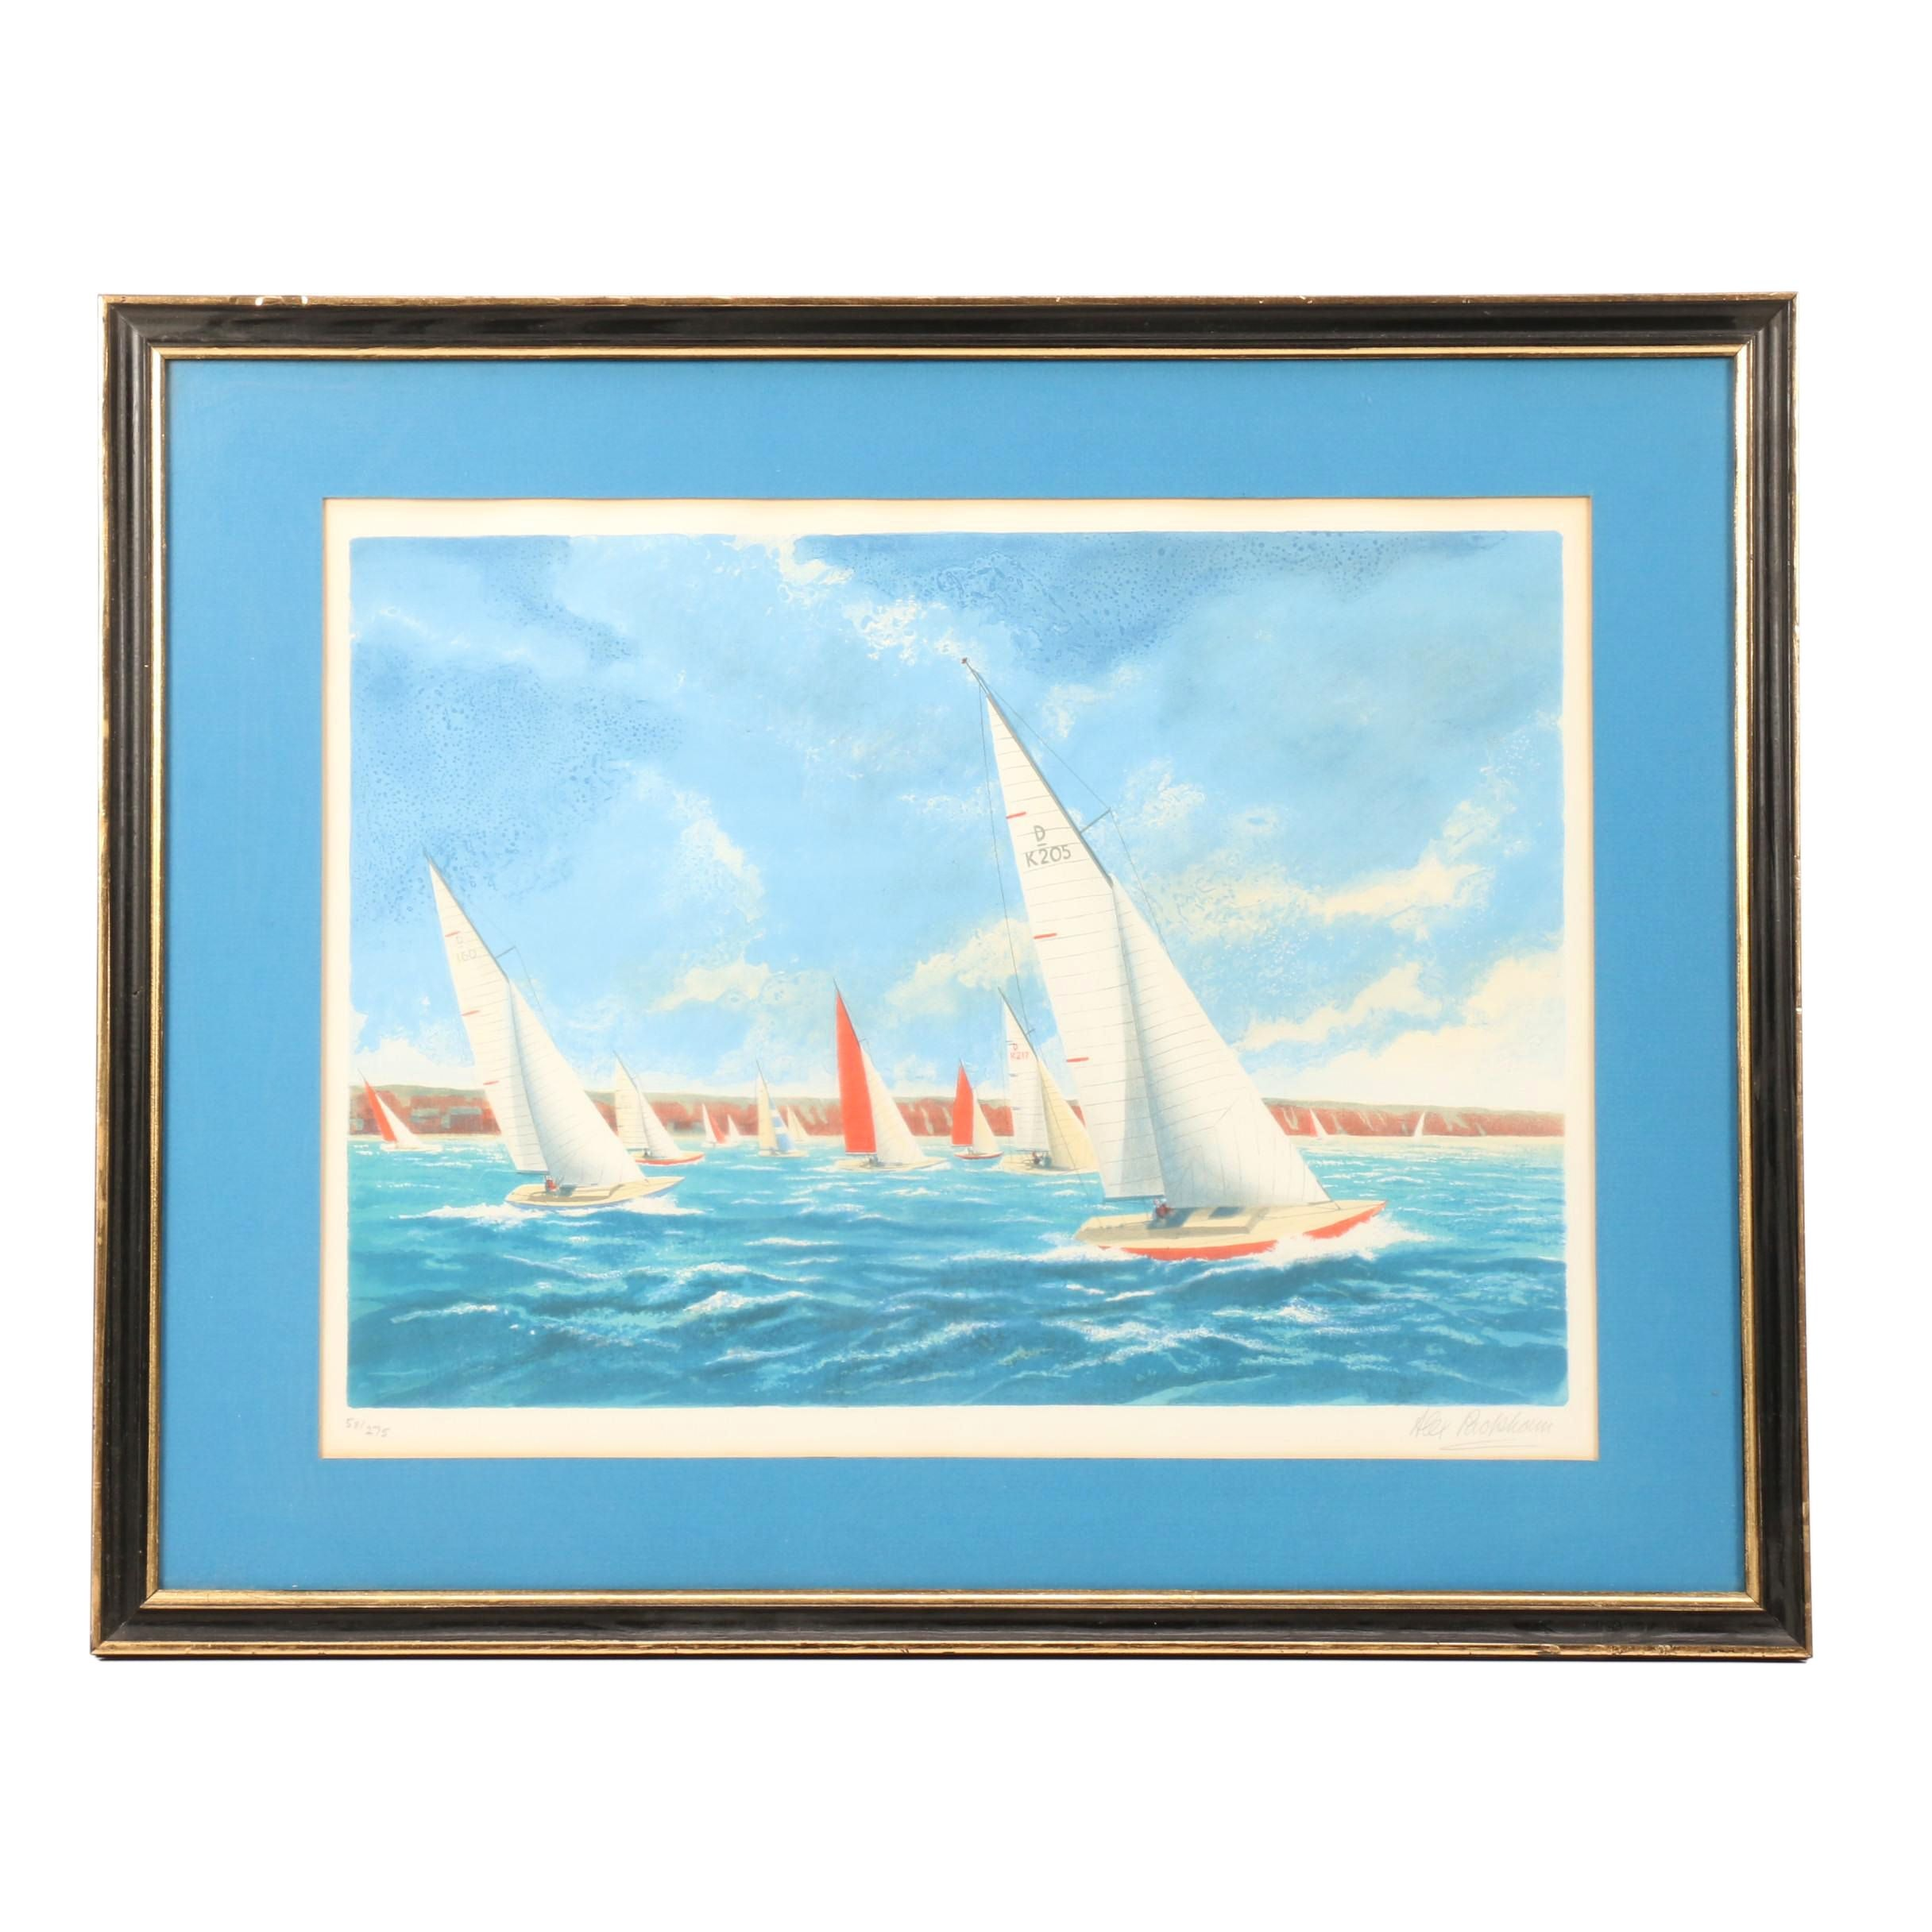 Alex Packham Limited Edition Lithograph of Yacht Race